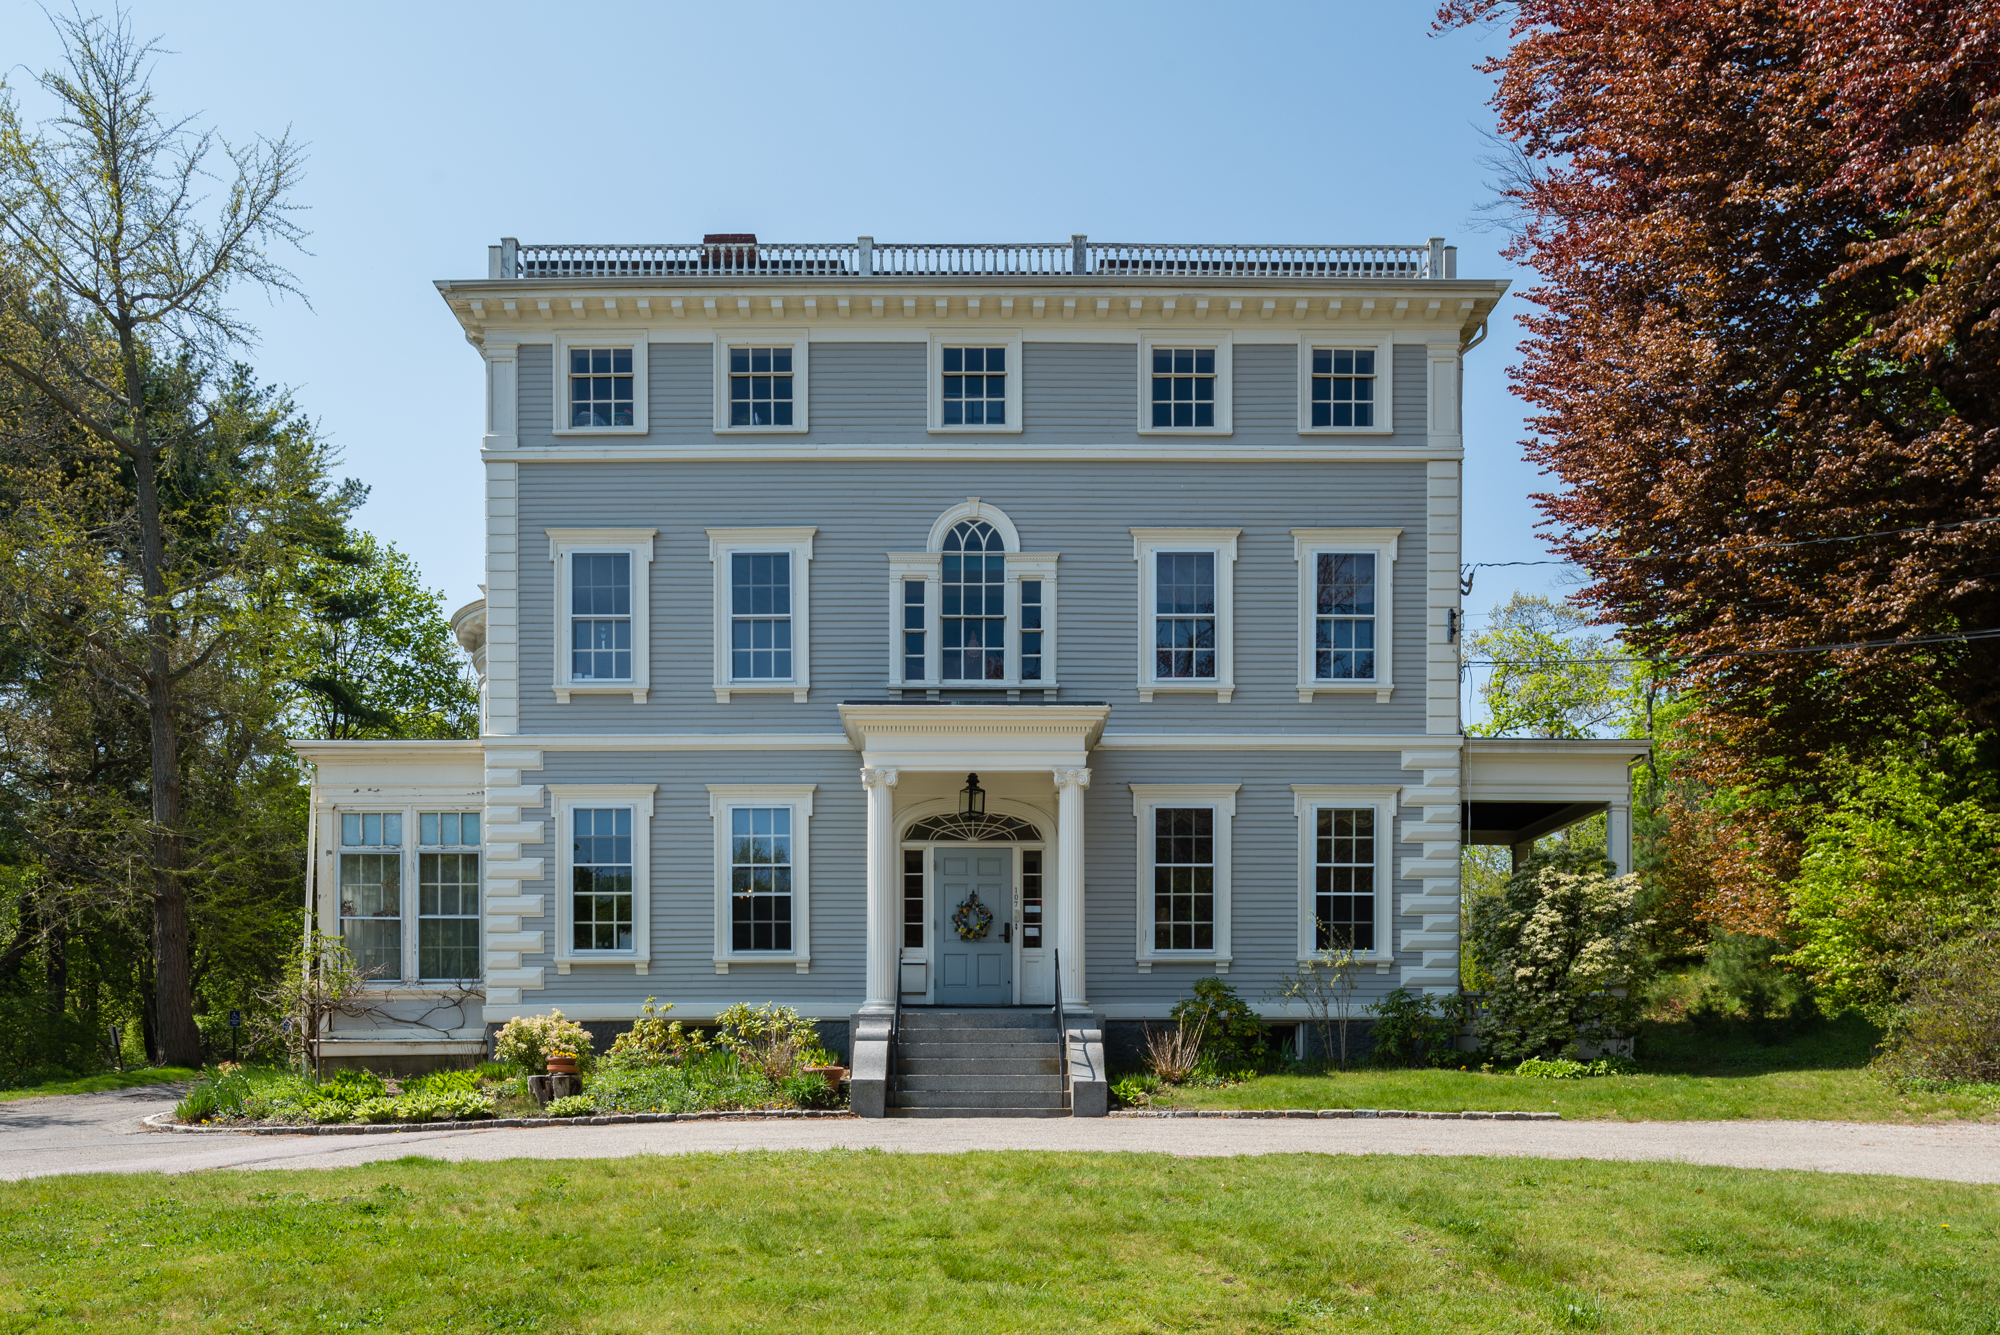 Find Hingham, MA homes for sale, real estate, apartments, condos & townhomes with Coldwell Banker Residential Brokerage.